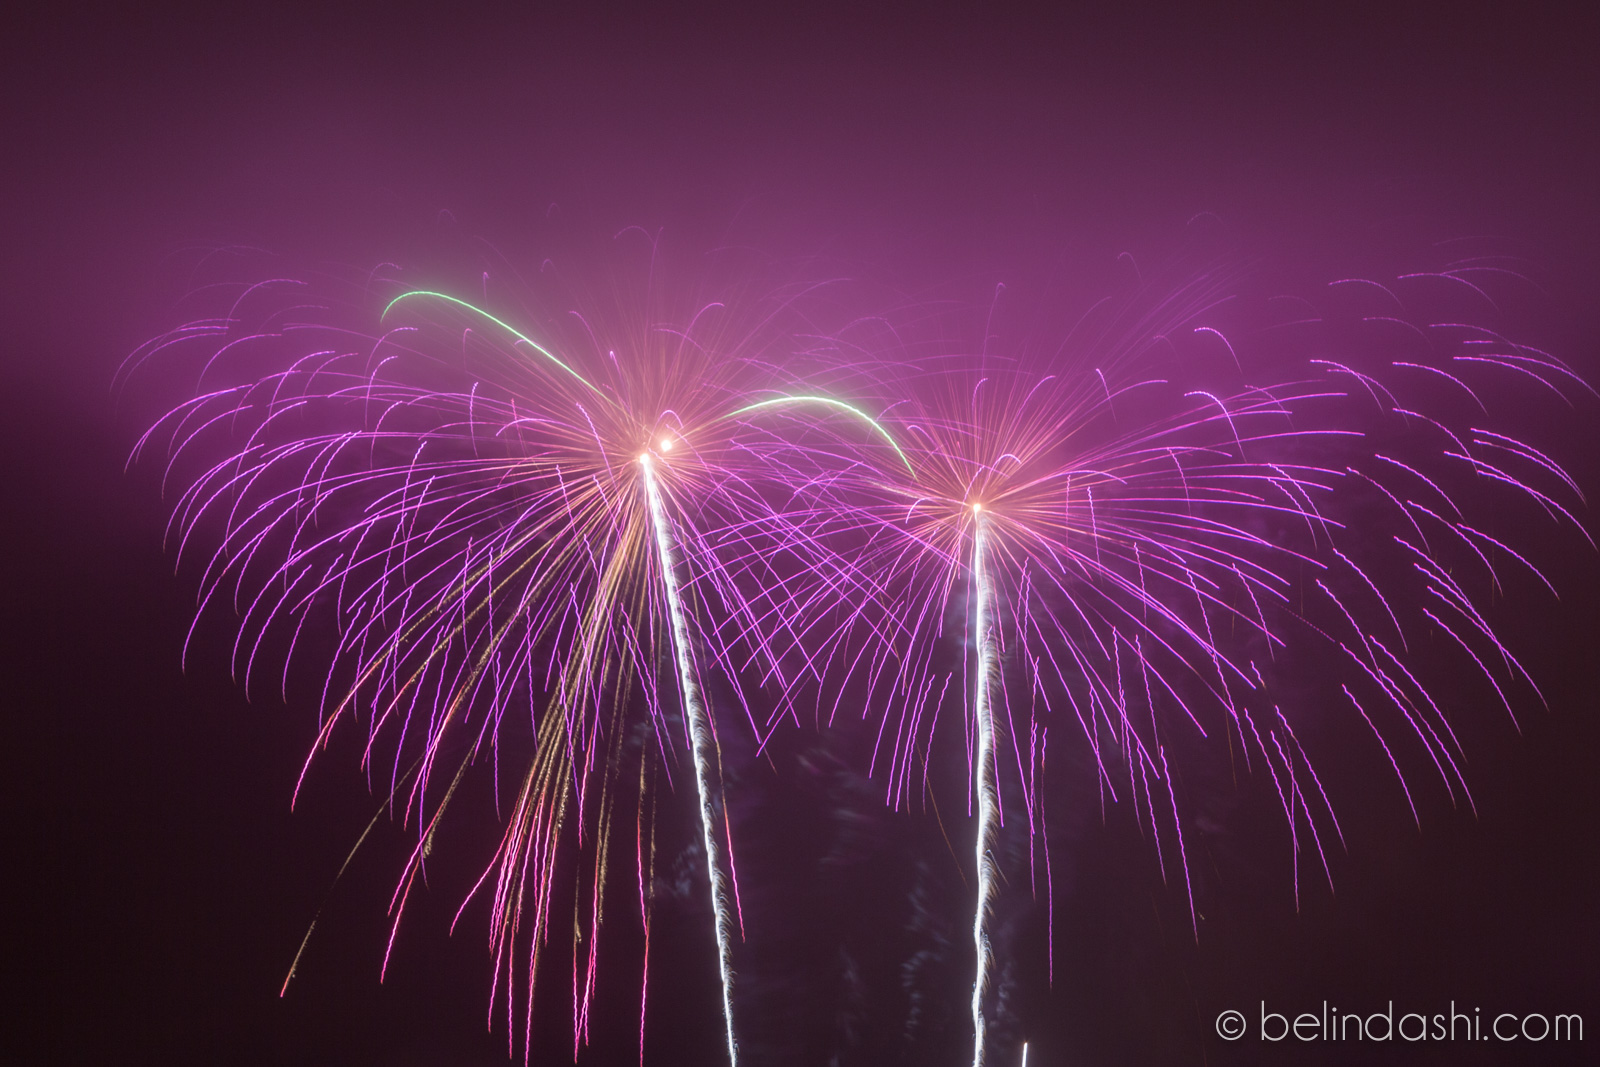 July 4th fireworks in San Francisco 2014-012, ISO200, 148mm, f/9, 4.2sec